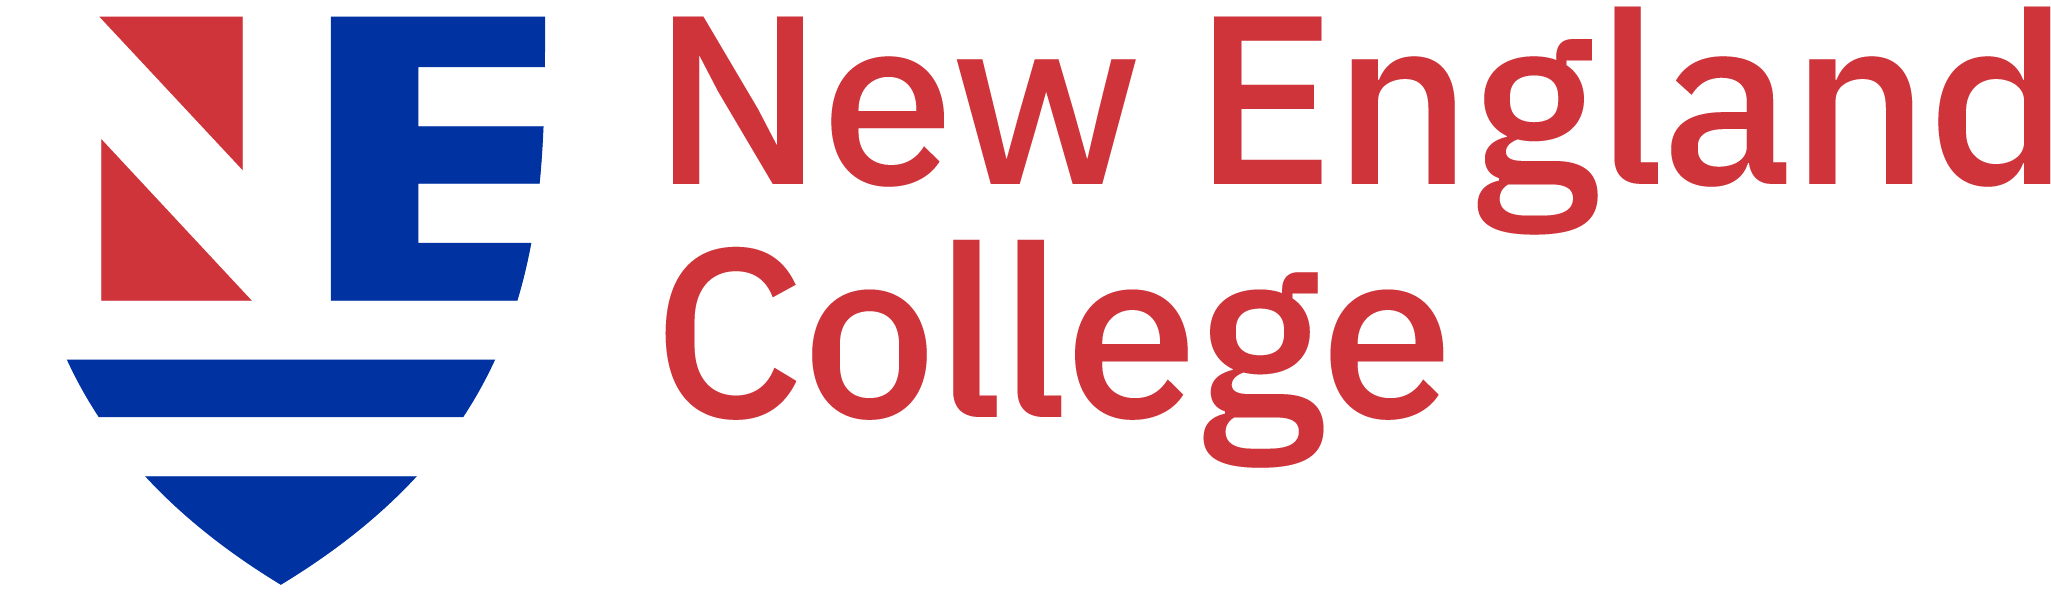 New England College, Discount on tuition for New England College online,